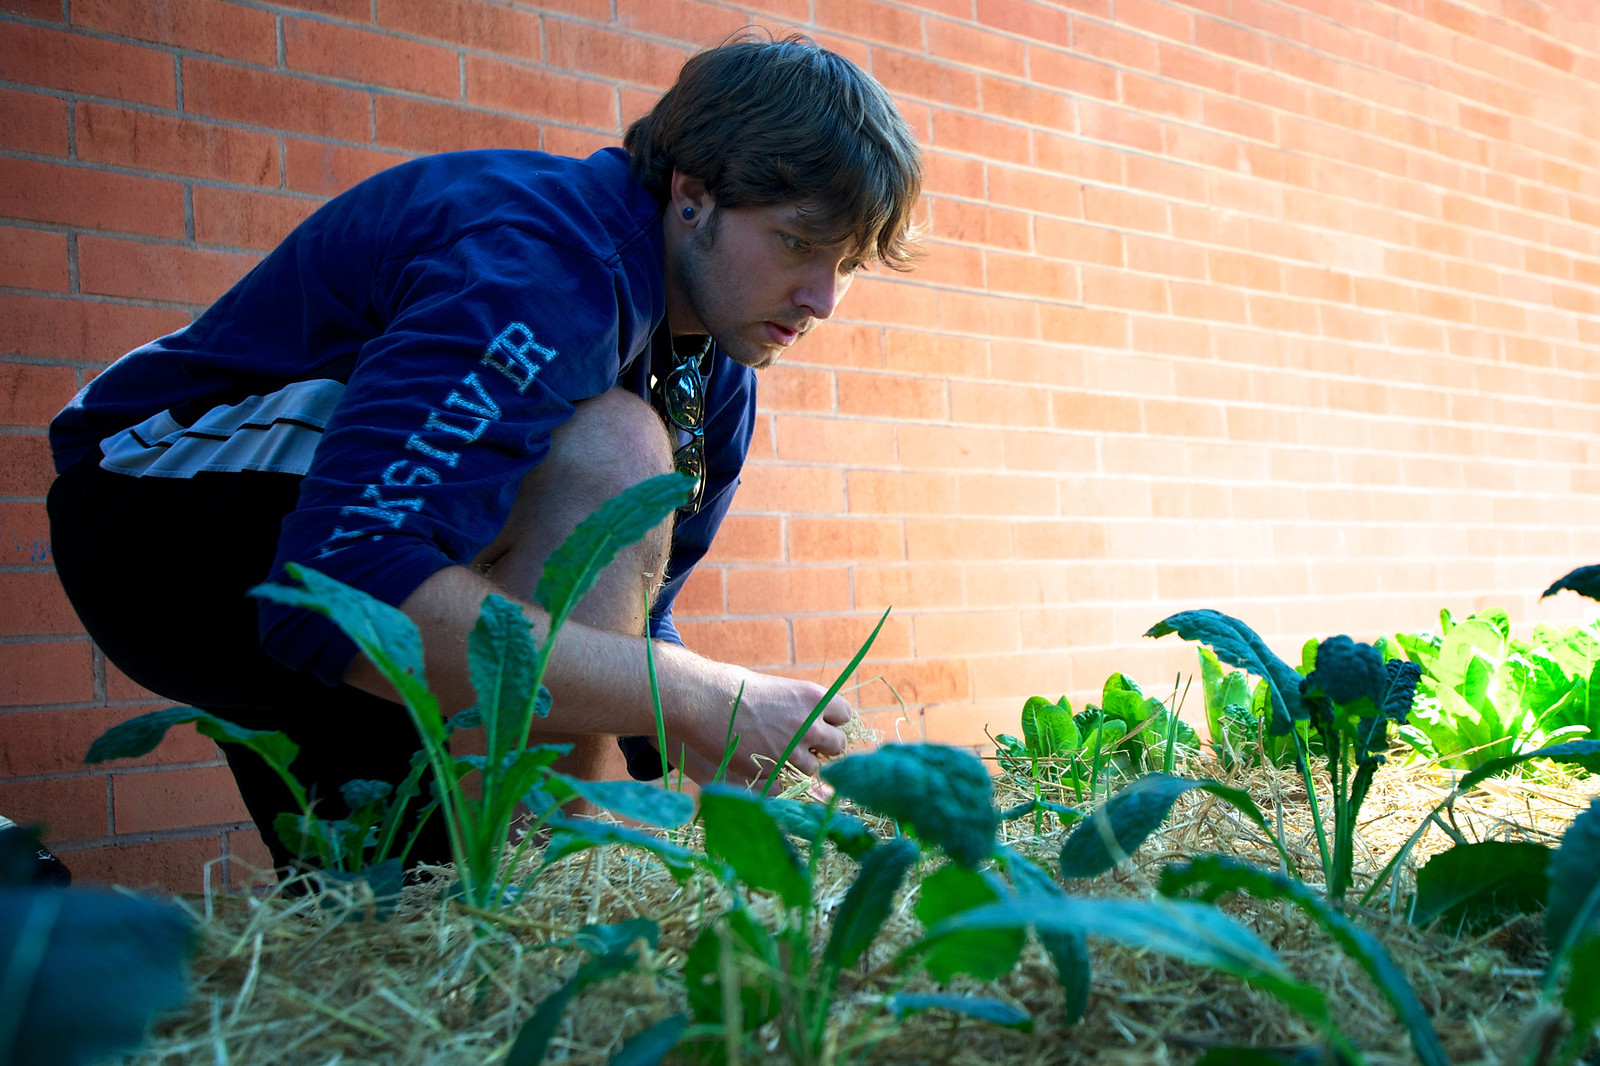 Michael Todd works on the community garden behind Mary Park Hall Sunday Sept. 15. Photo by Kate O'Neal / Xpress.